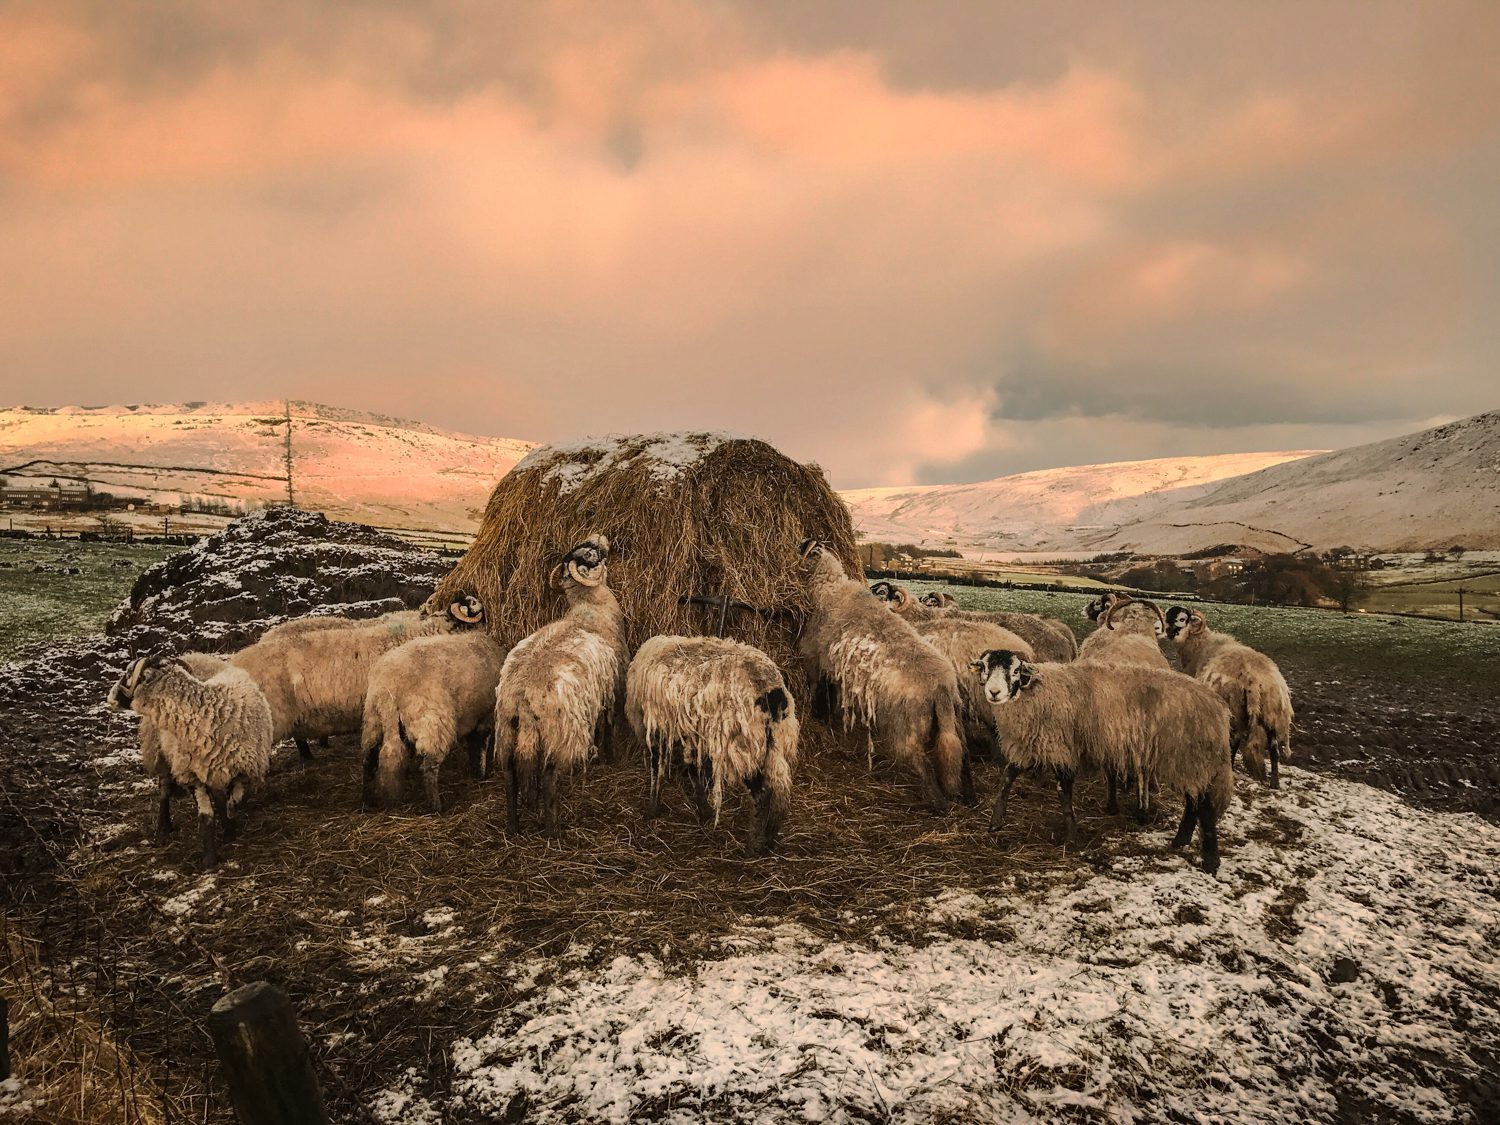 sheep sunset landscape photography stuart coleman